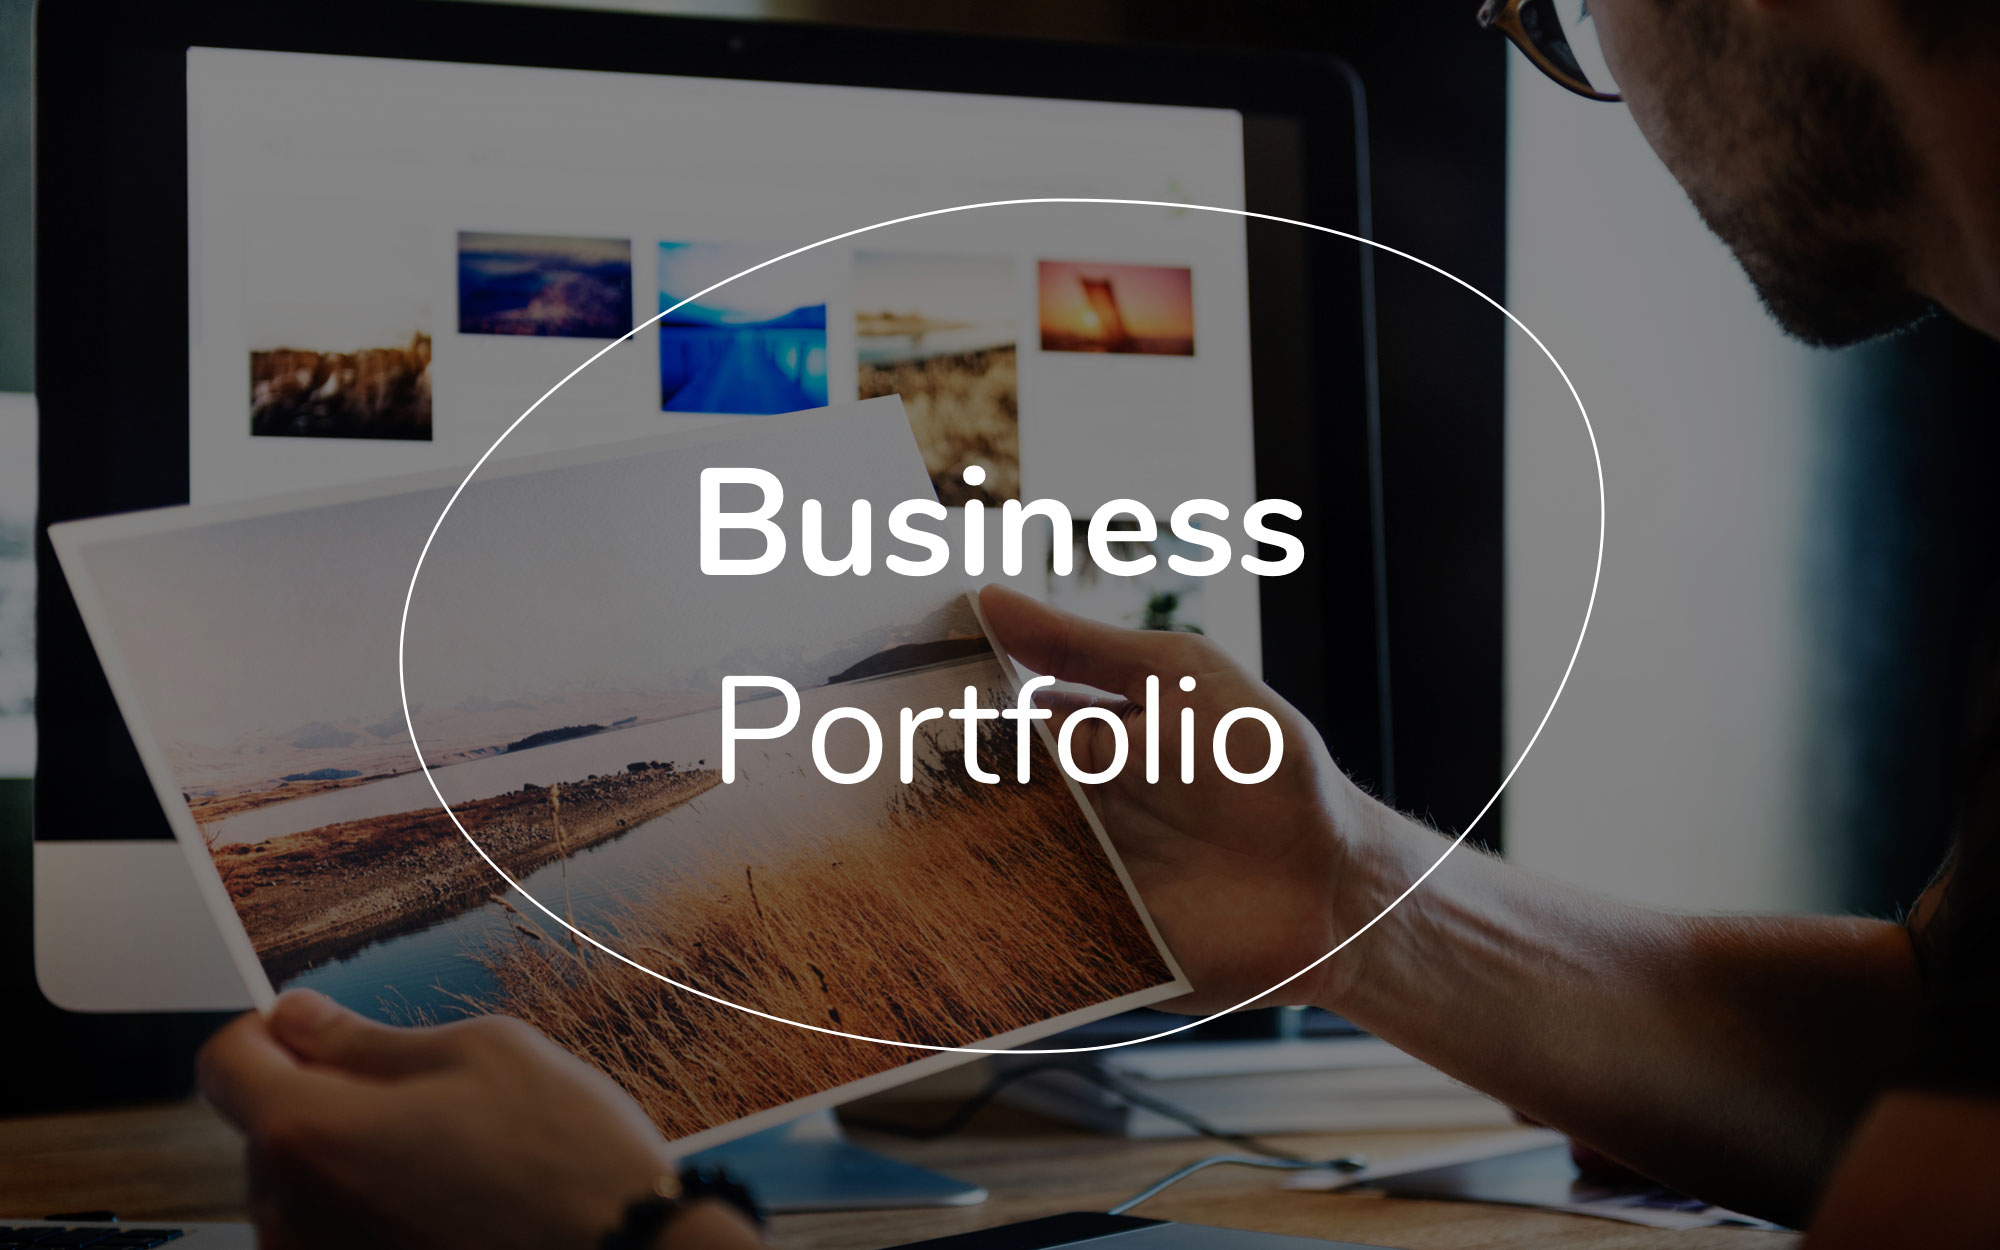 Business portfolio template free pdf ppt download slidebean business portfolio template free pdf ppt download flashek Gallery